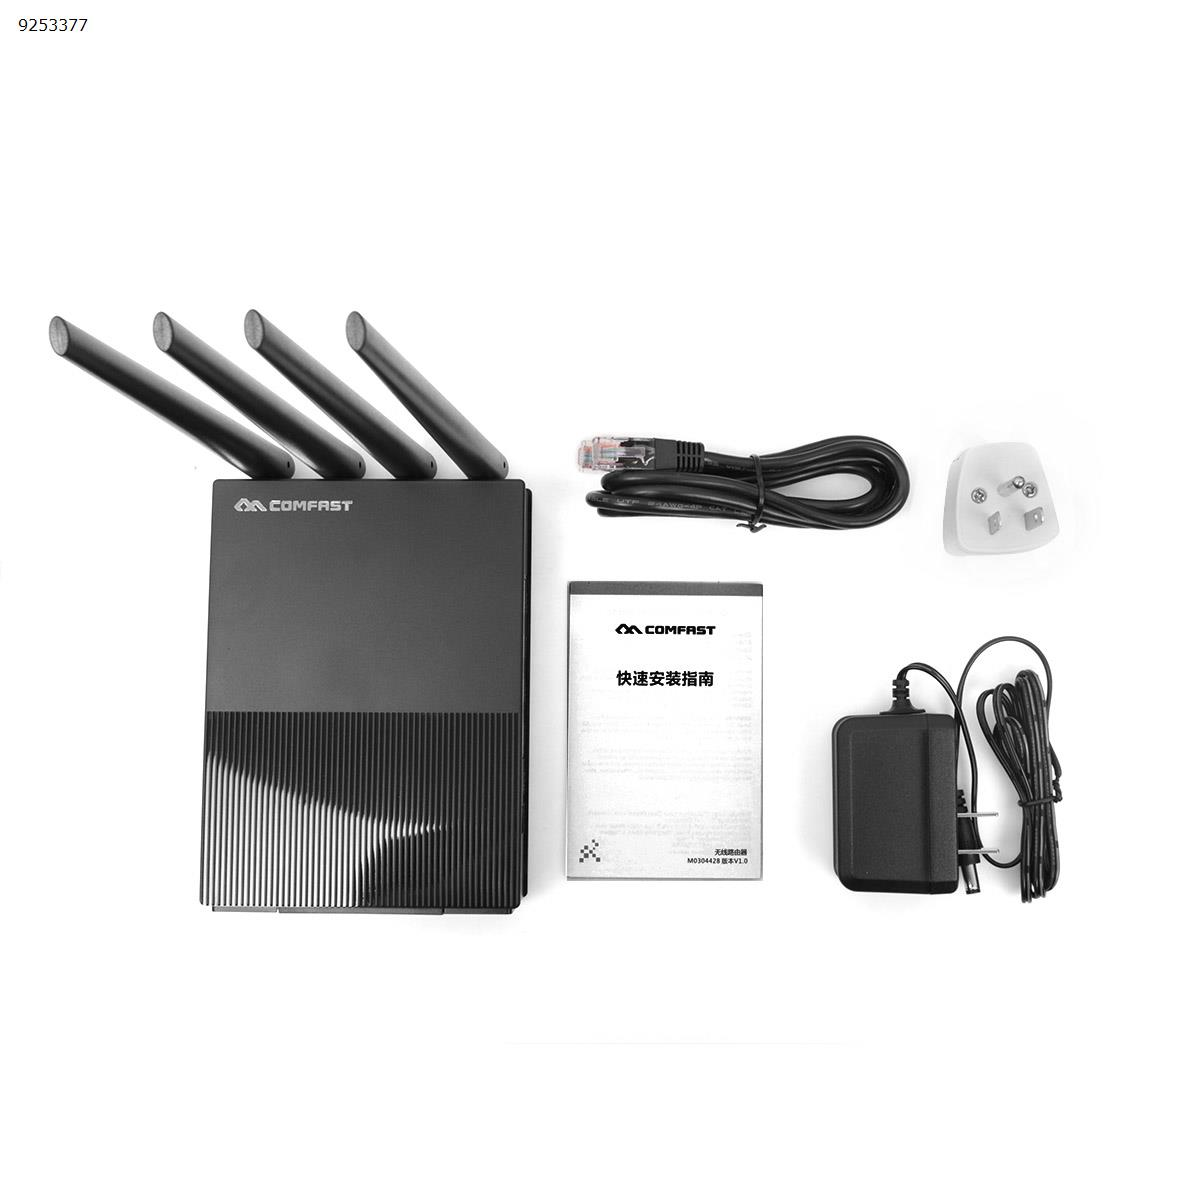 COMFAST WR617AC 1200M through wall high power wireless router Network CF-WR617AC